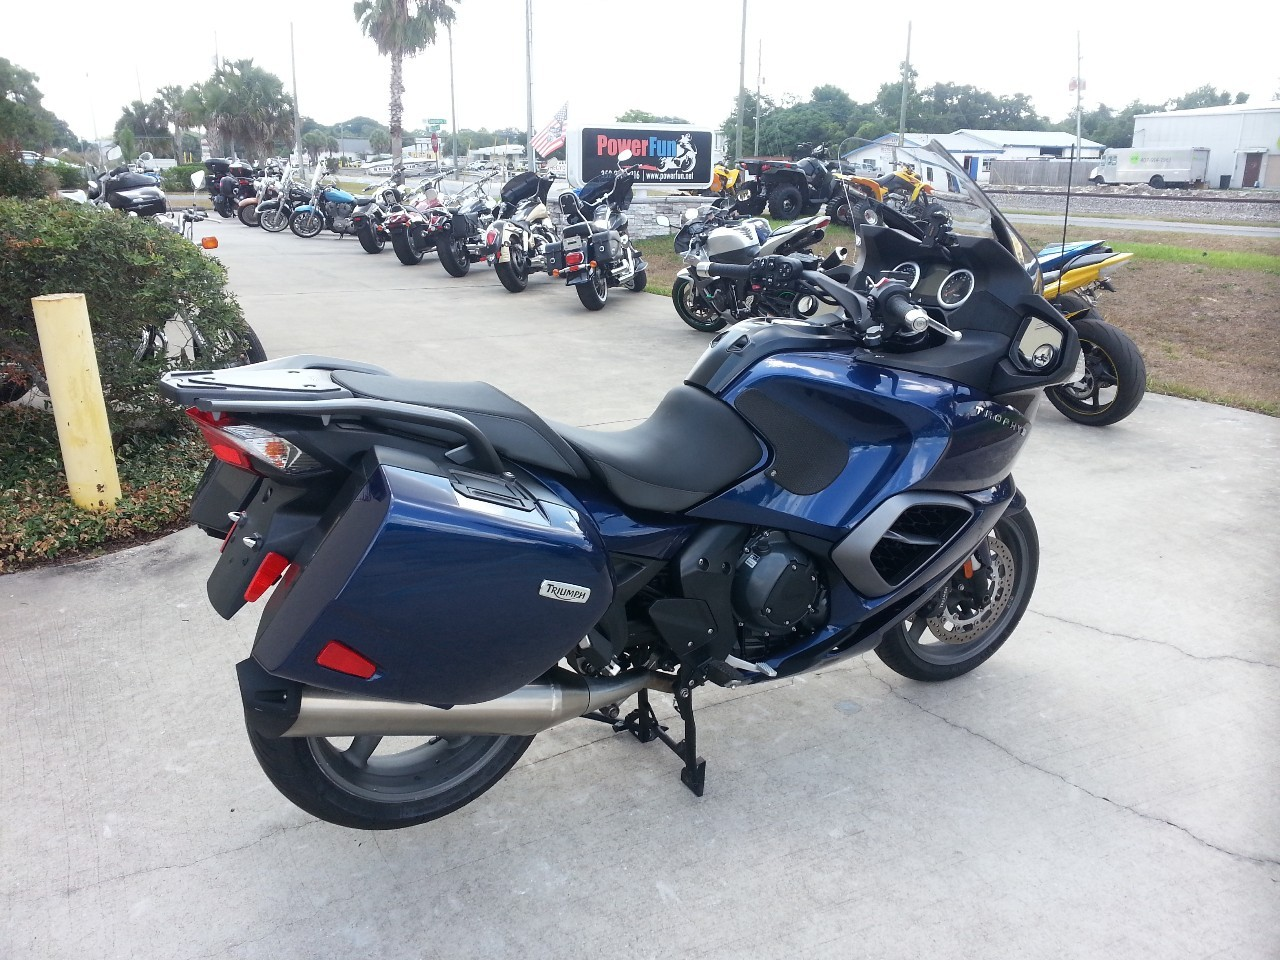 2013 Triumph TROPHY 1200 SE , motorcycle listing